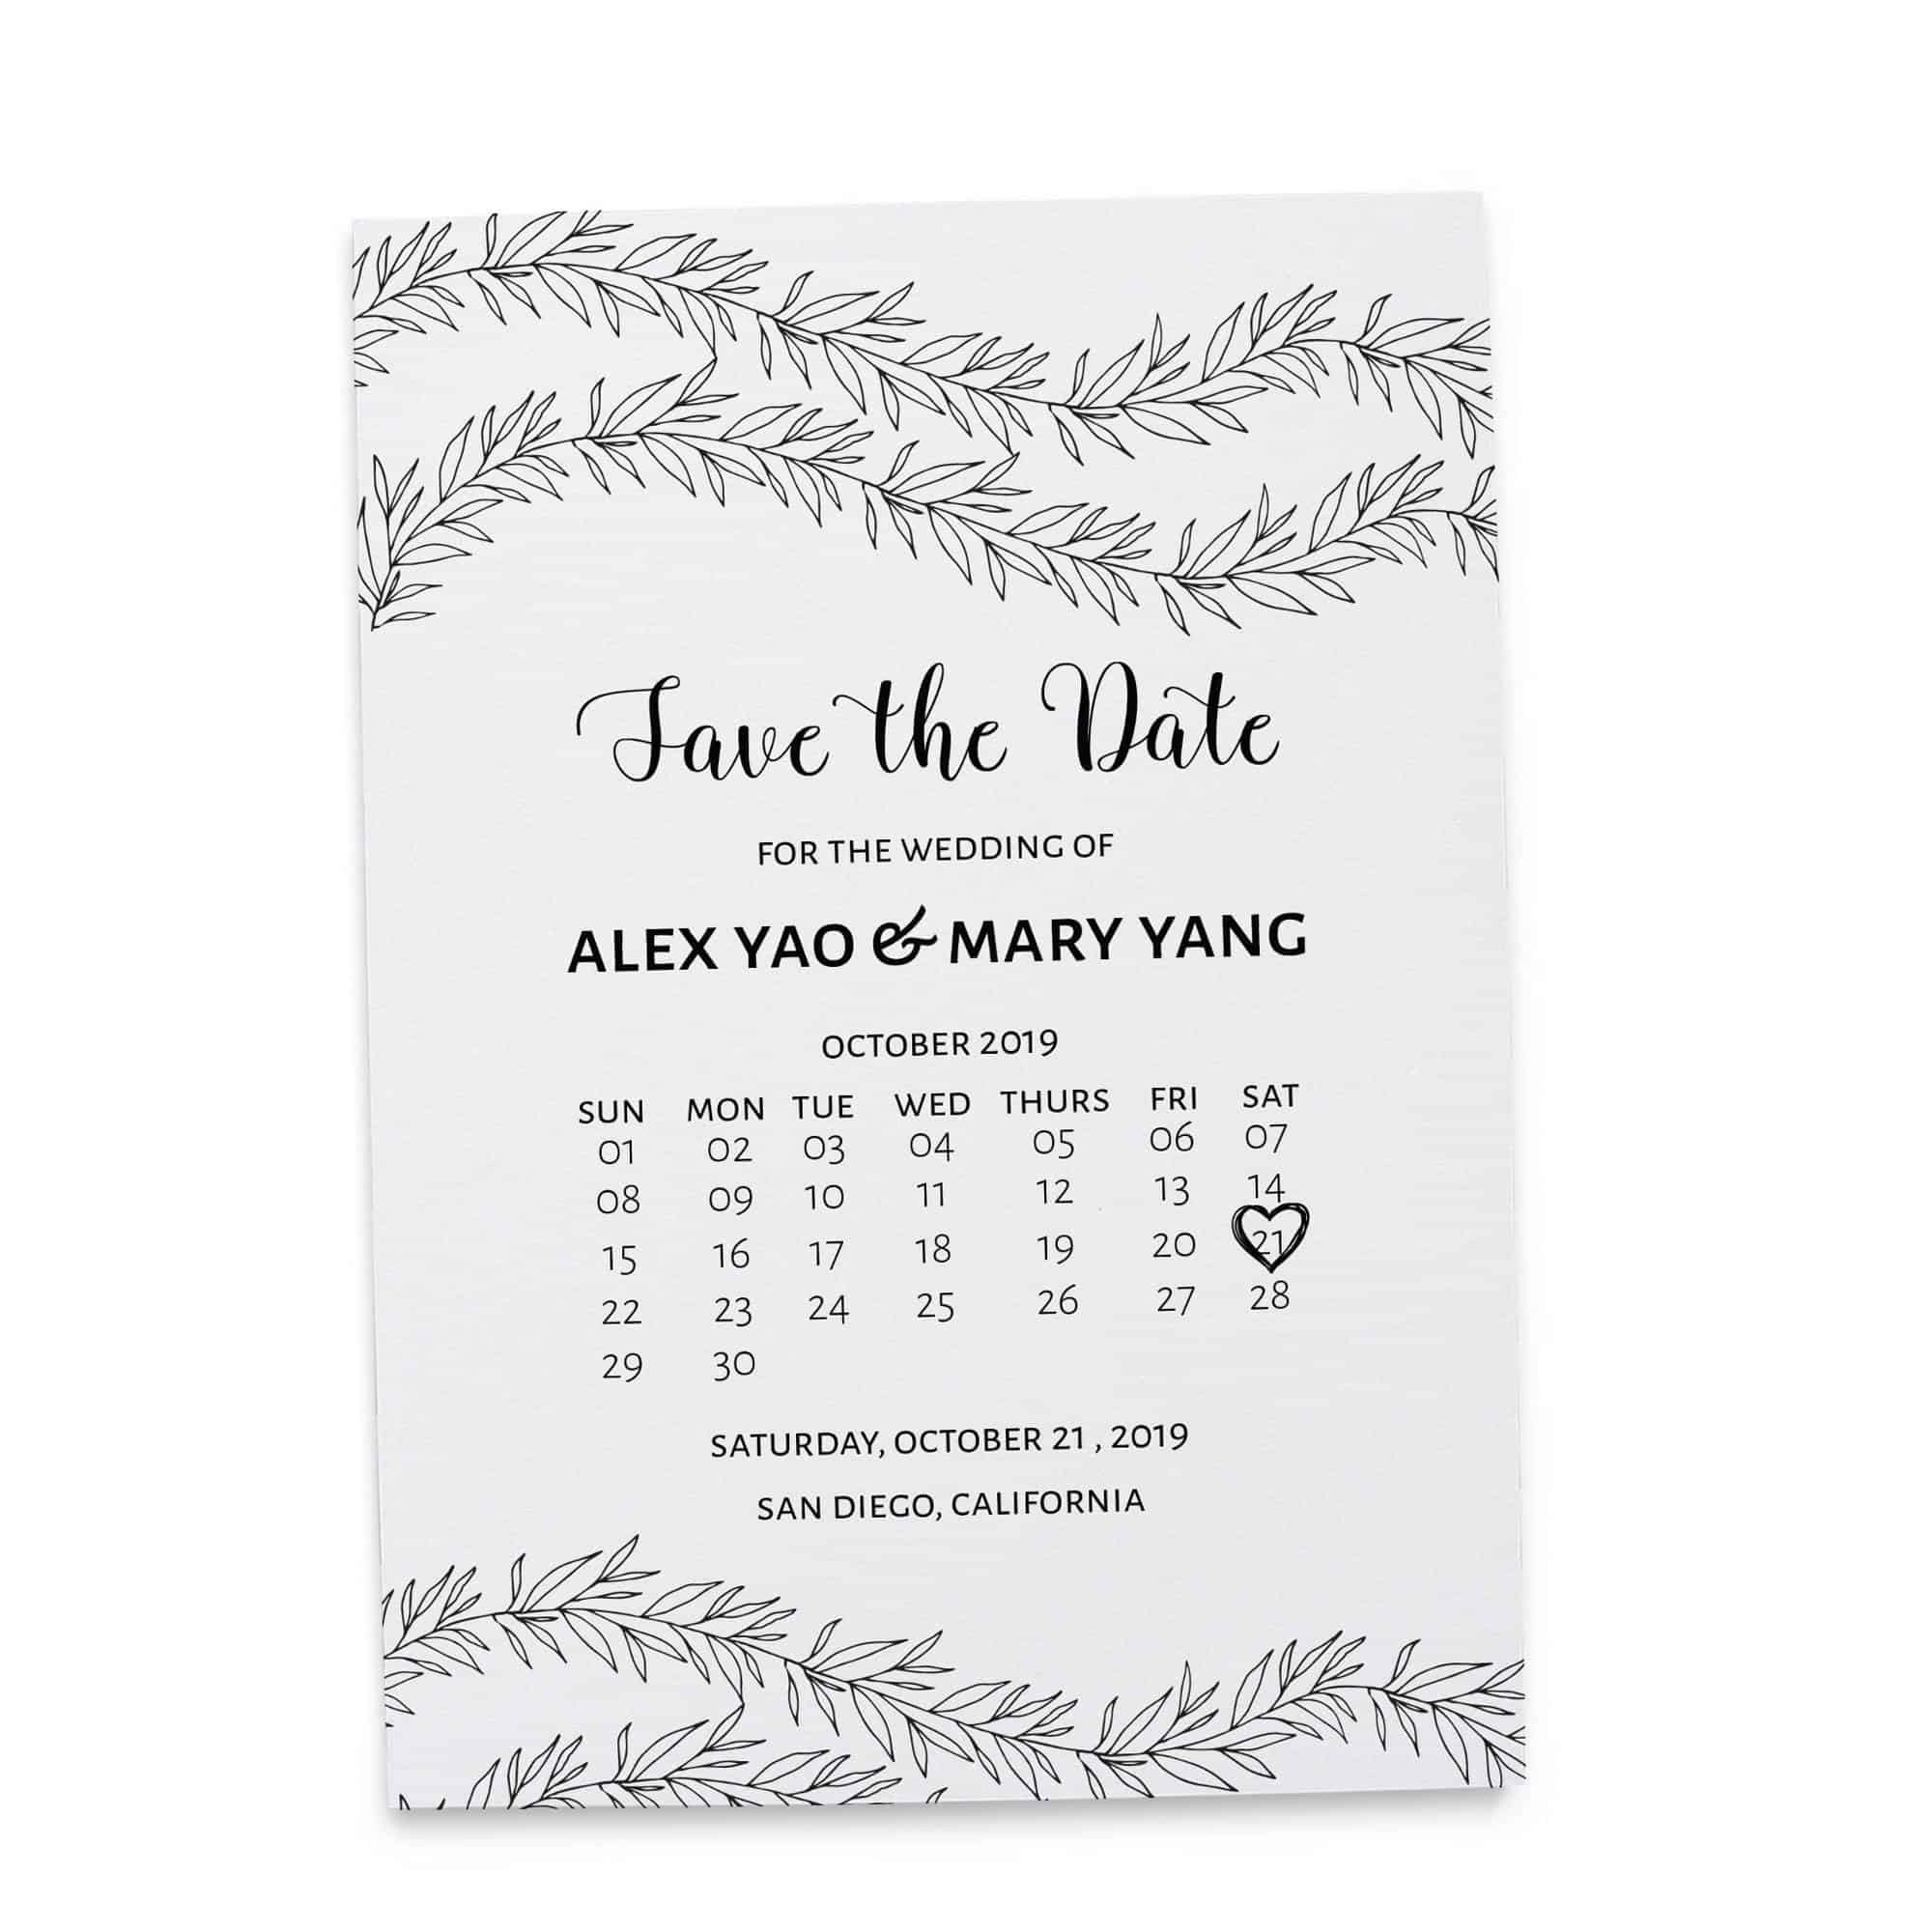 Simple Save the Date Cards, Unique Rustic Calendar Save the Date Cards